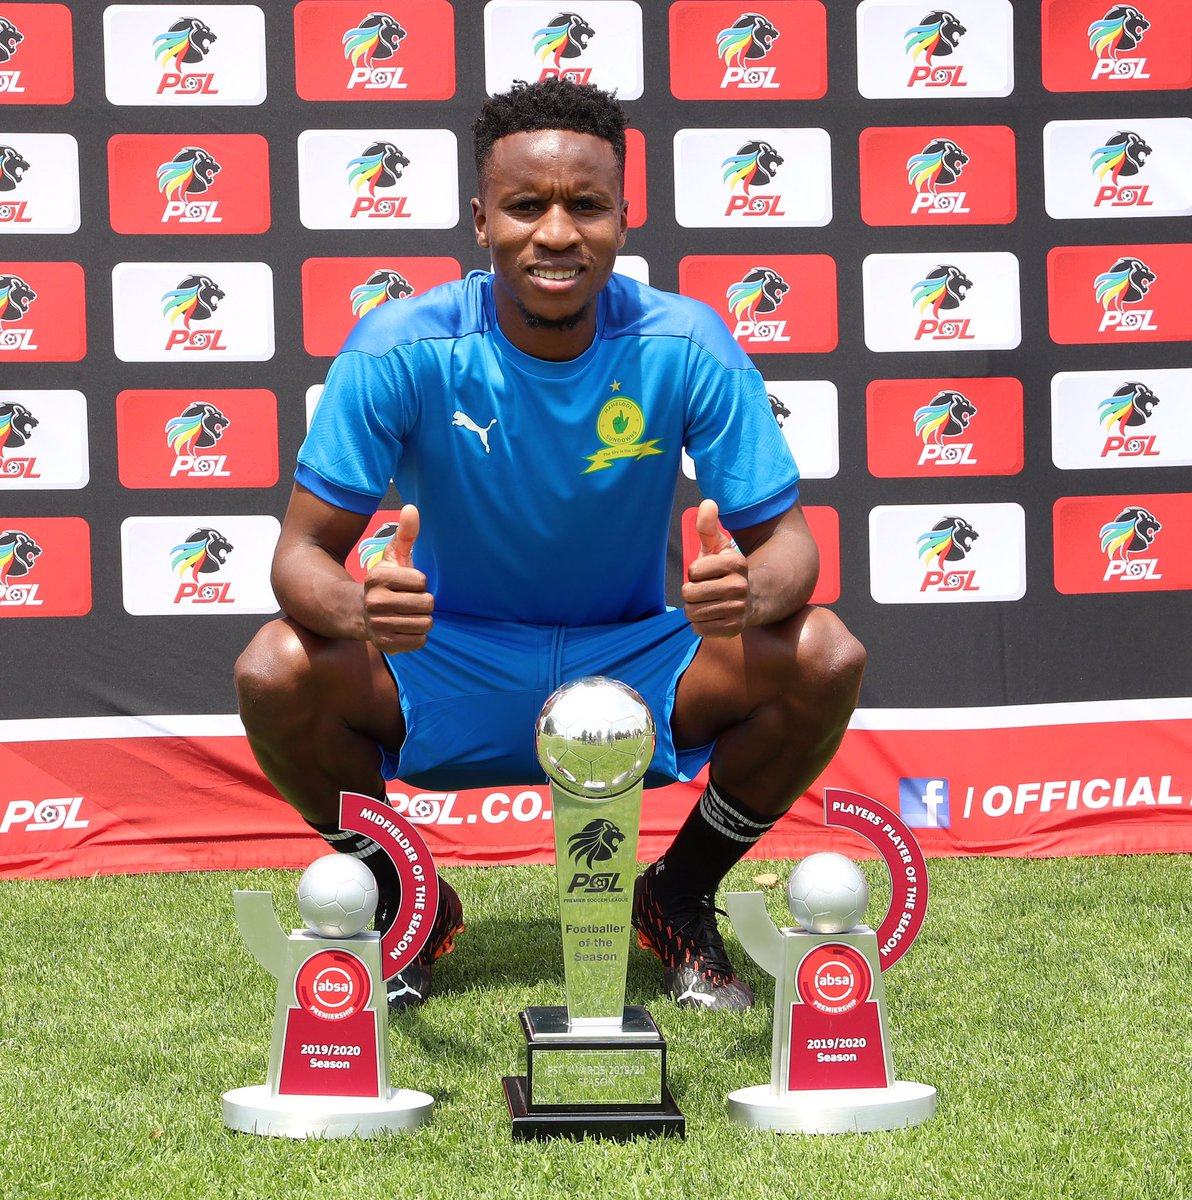 CONGRATULATIONS Themba Zwane :   - 2019/20 PSL Footballer of the Season  - Absa Premiership Player's Player of the Season  - Absa Premiership Midfielder of the Season   #PSLAwards20  @Masandawana #90minssocer https://t.co/D2jE4LEuX5